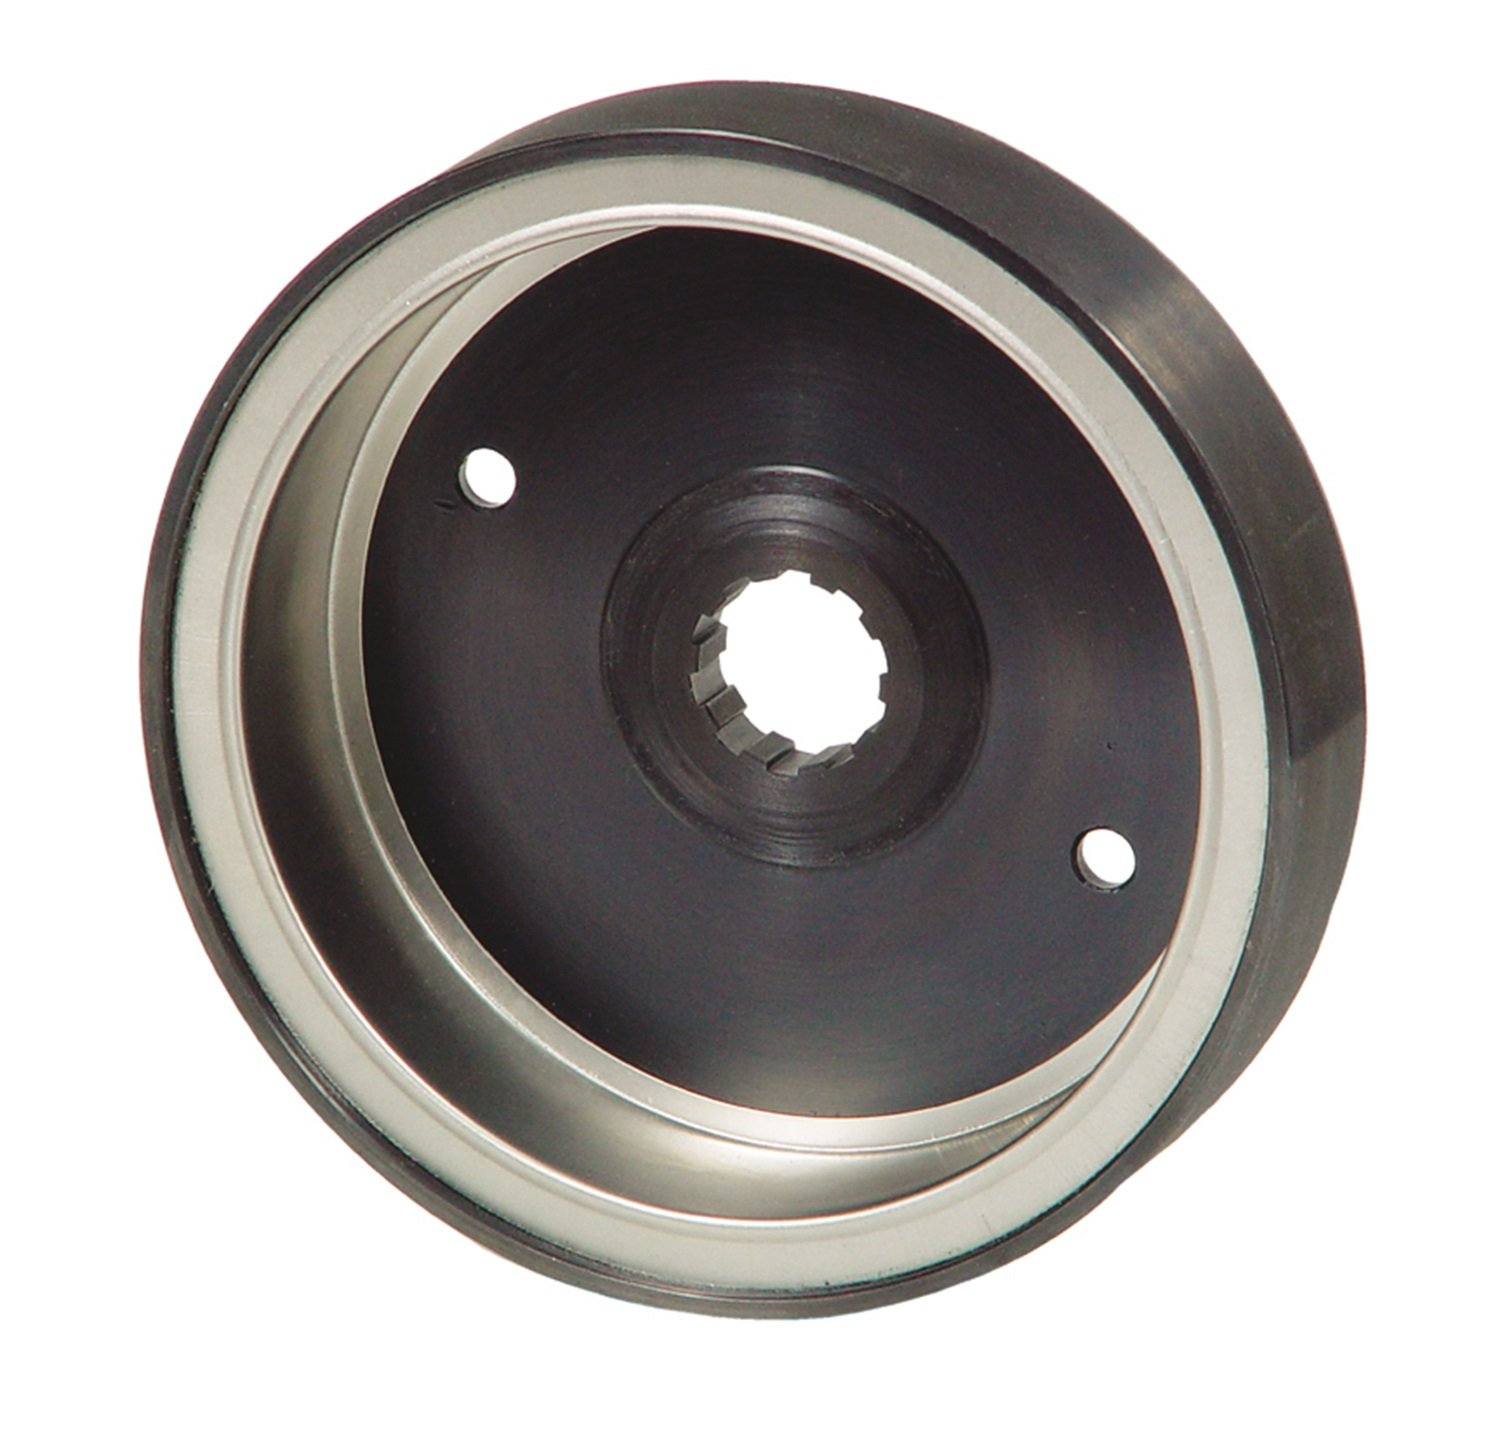 ACCEL 152100 Heavy Duty Lectric Rotor ACC 152100